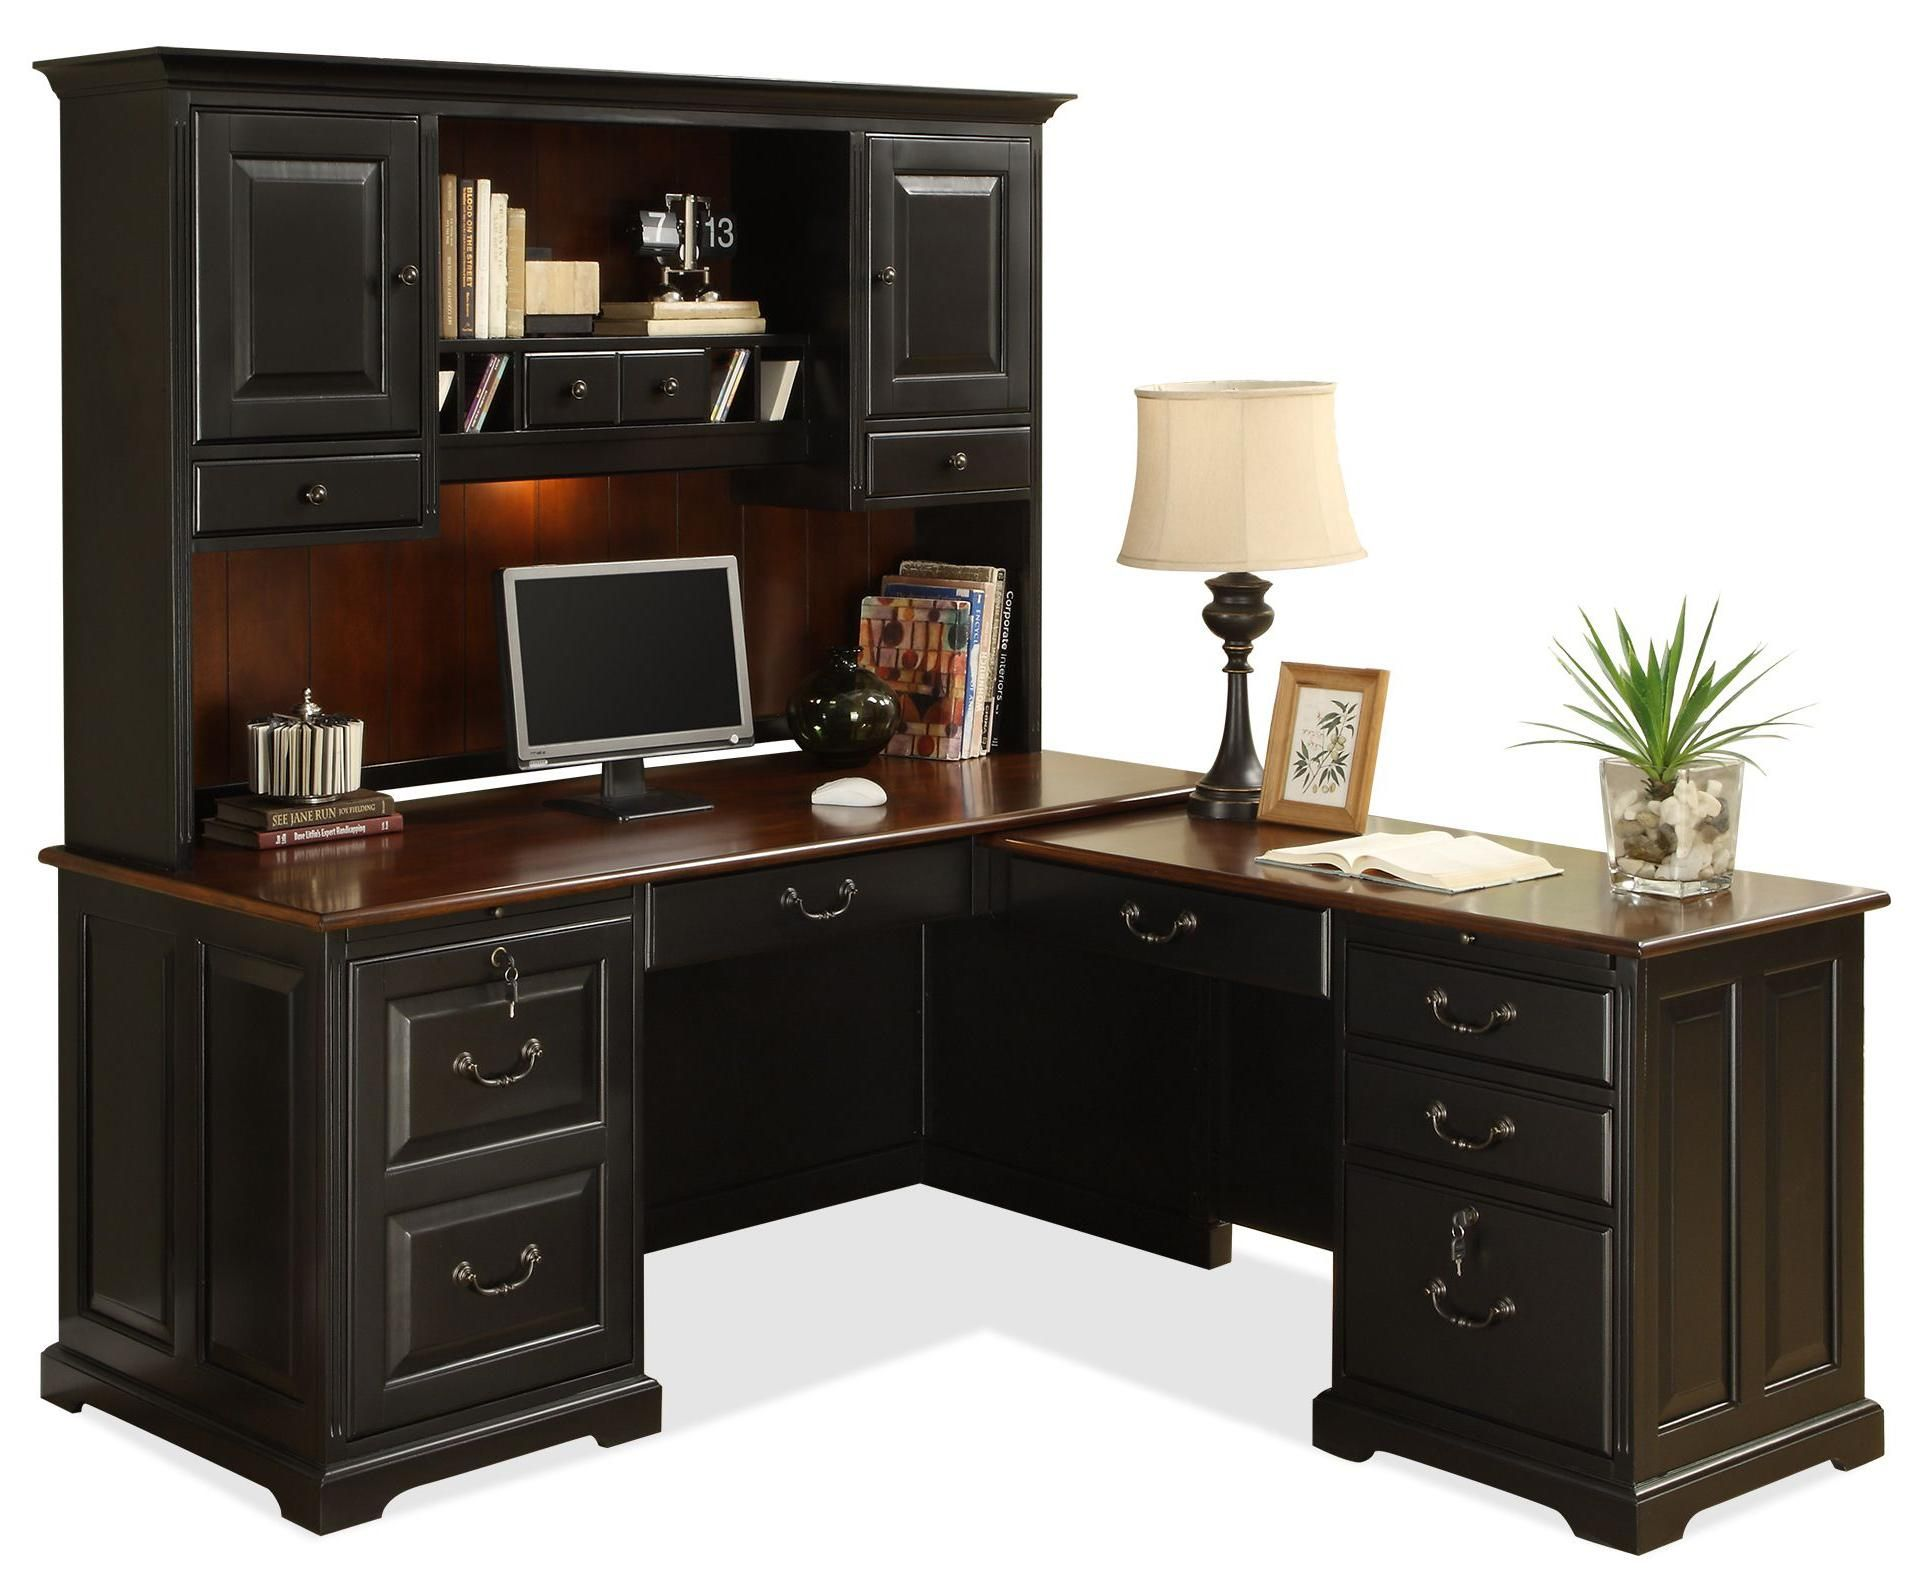 home free today signature with garden by office design shipping ashley overstock townser desk grey hutch product